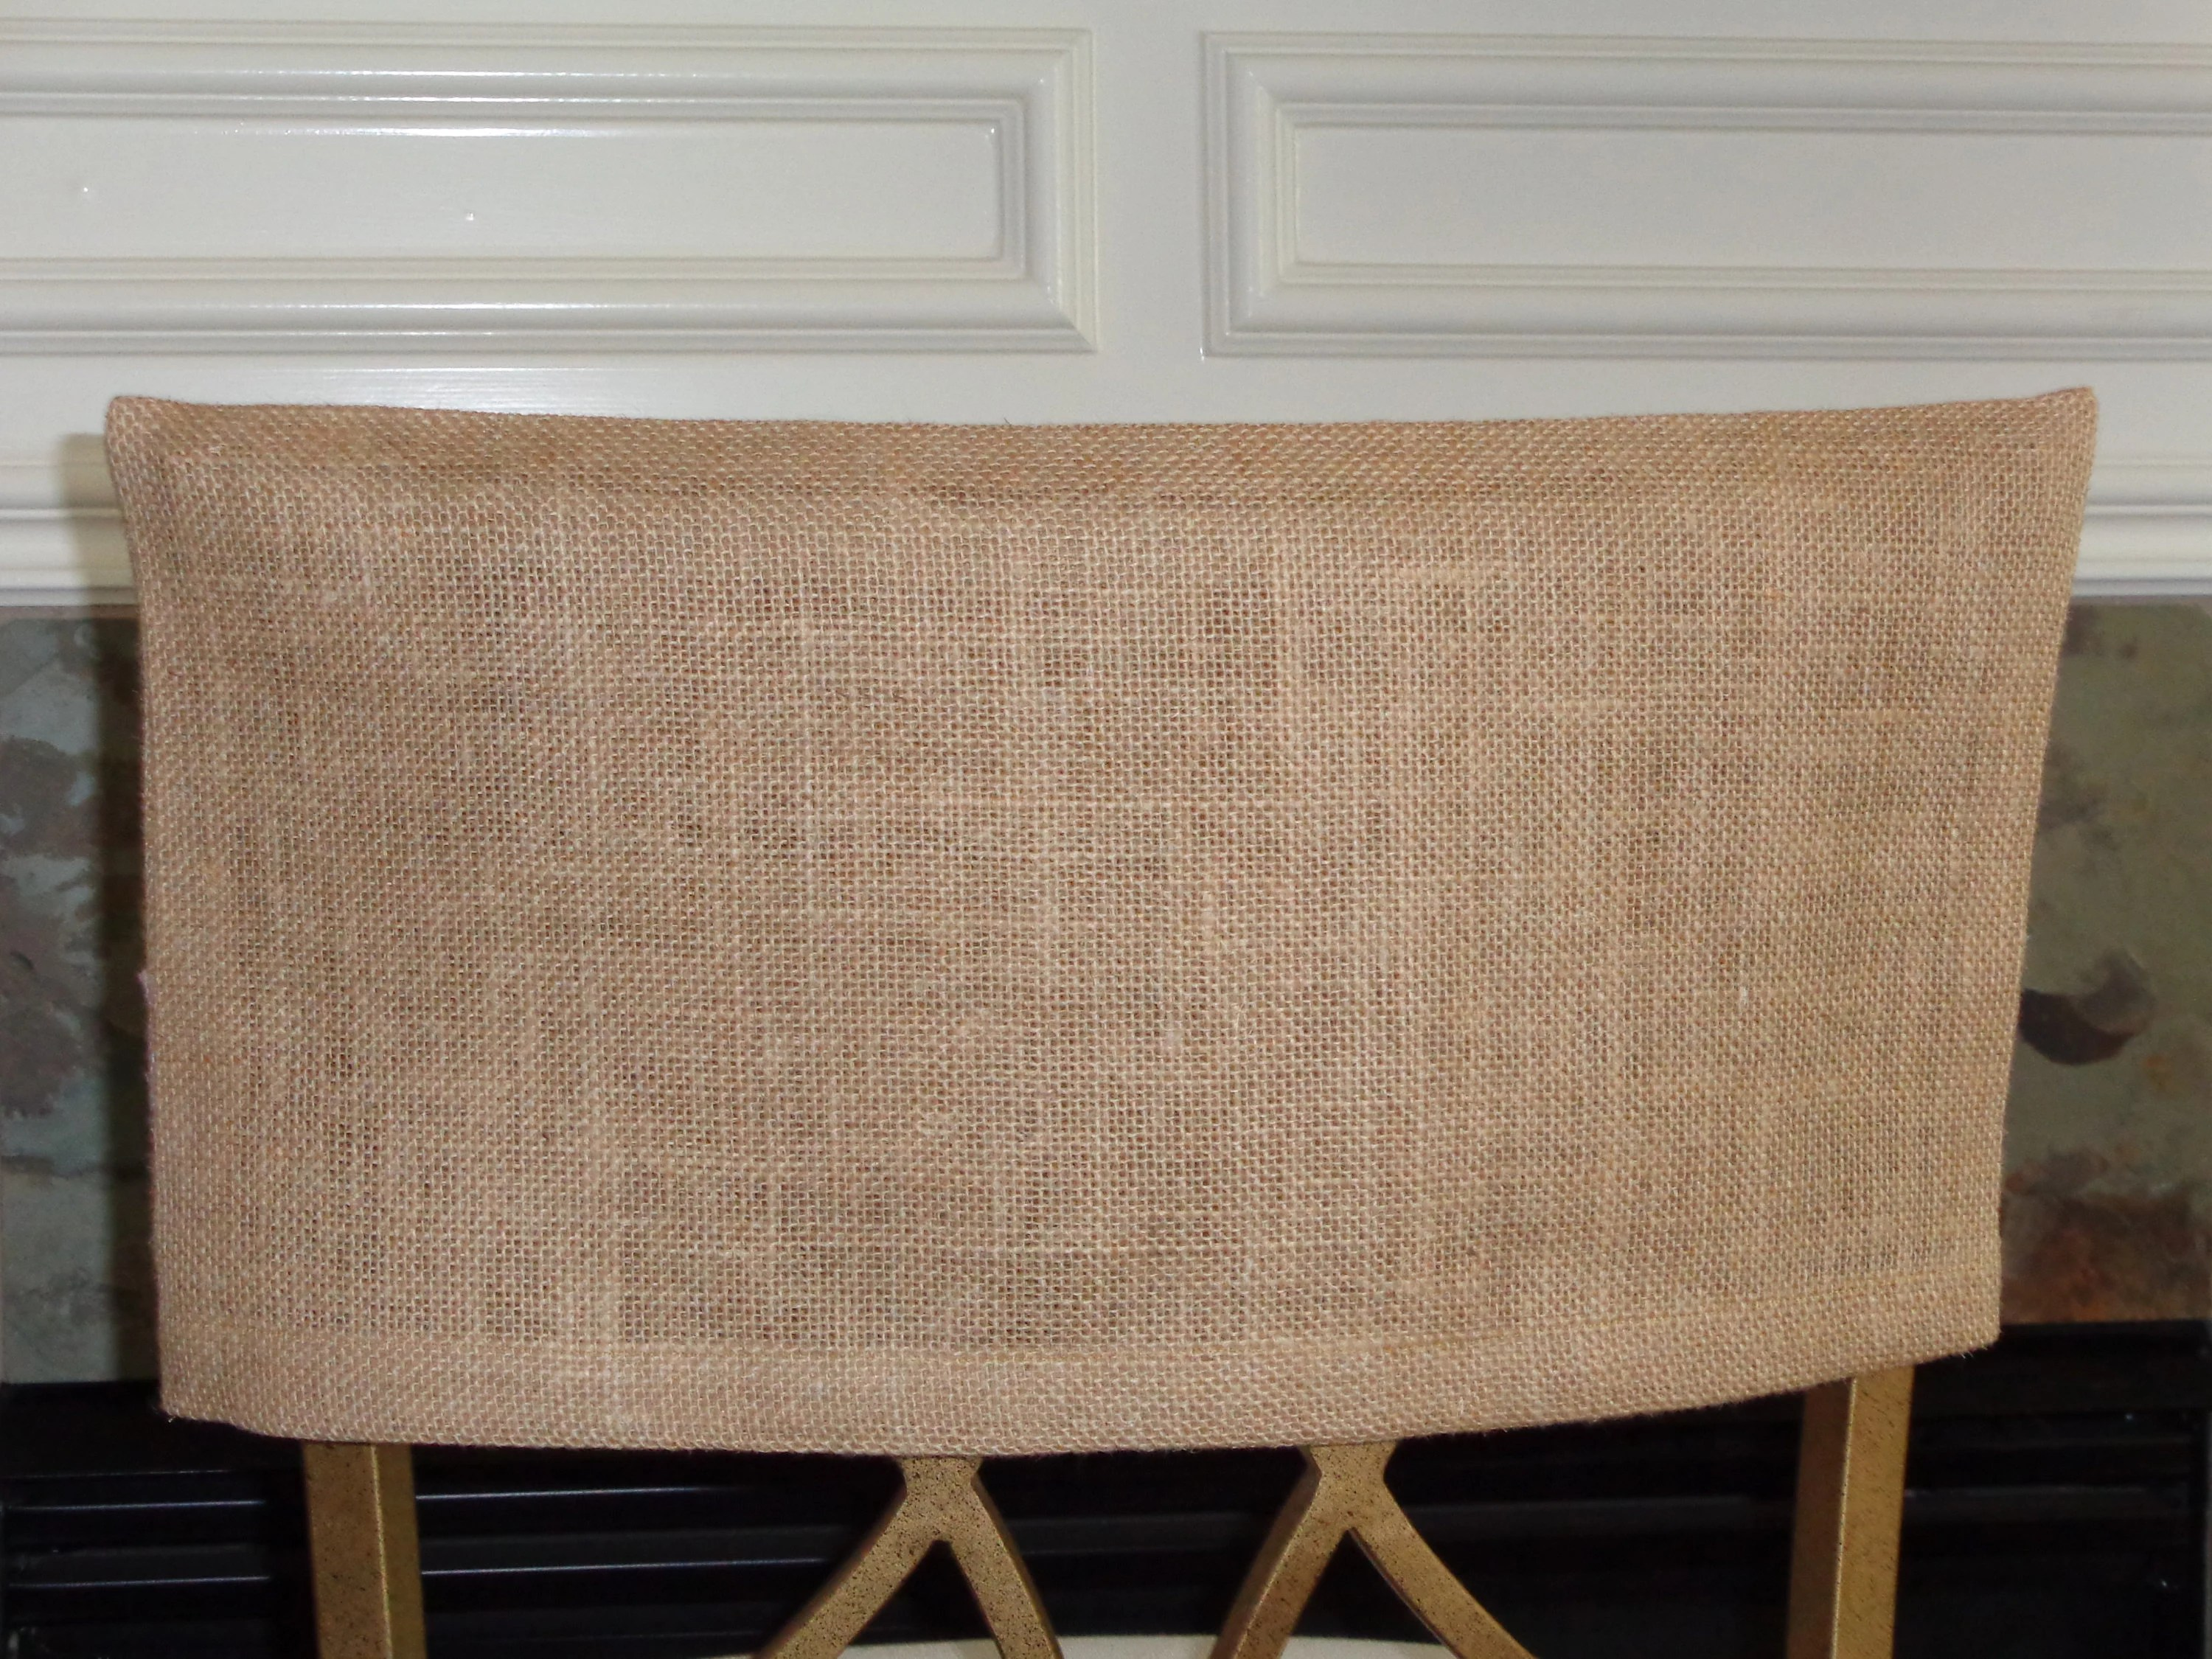 dorm chair covers etsy design car burlap cover cap half back slipcover bar stools rustic classroom chairs dining